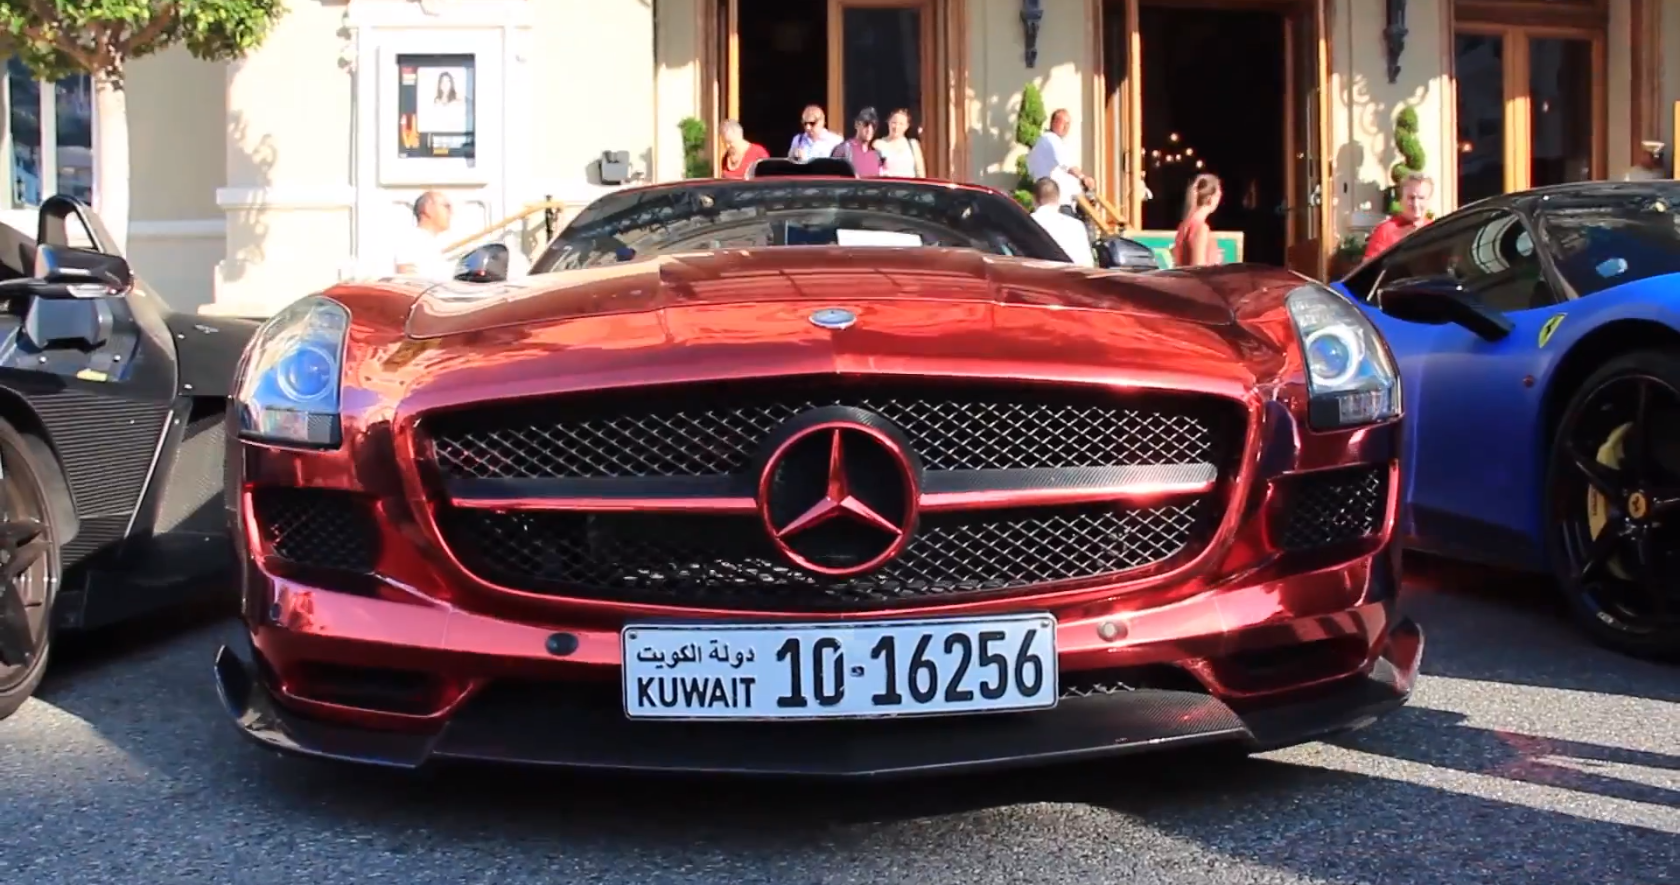 Red chrome sls amg drops jaws all around europe for Mercedes benz sls amg red